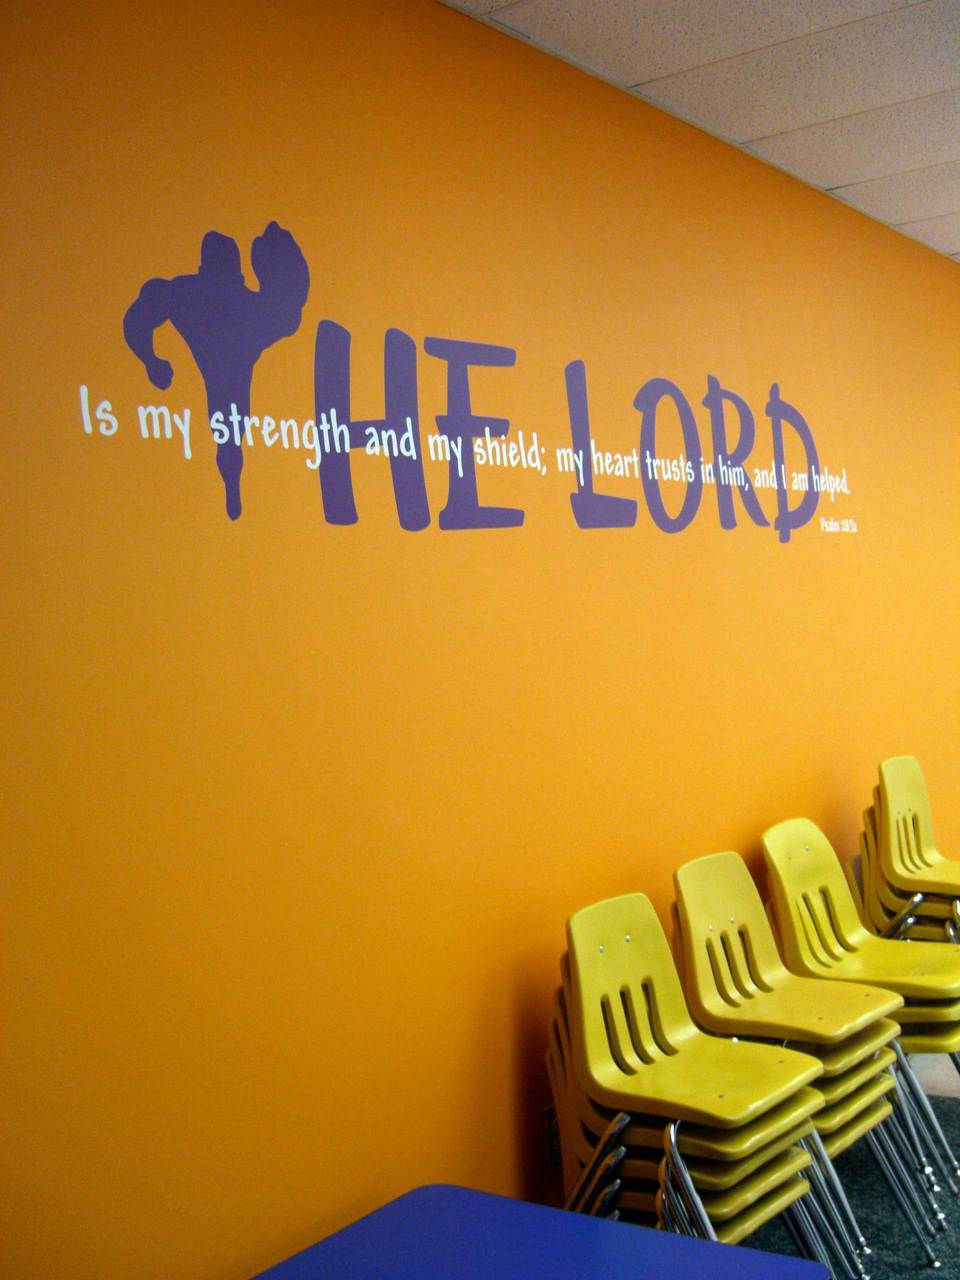 wall praise bible verse decal for your church worship center strength of the lord